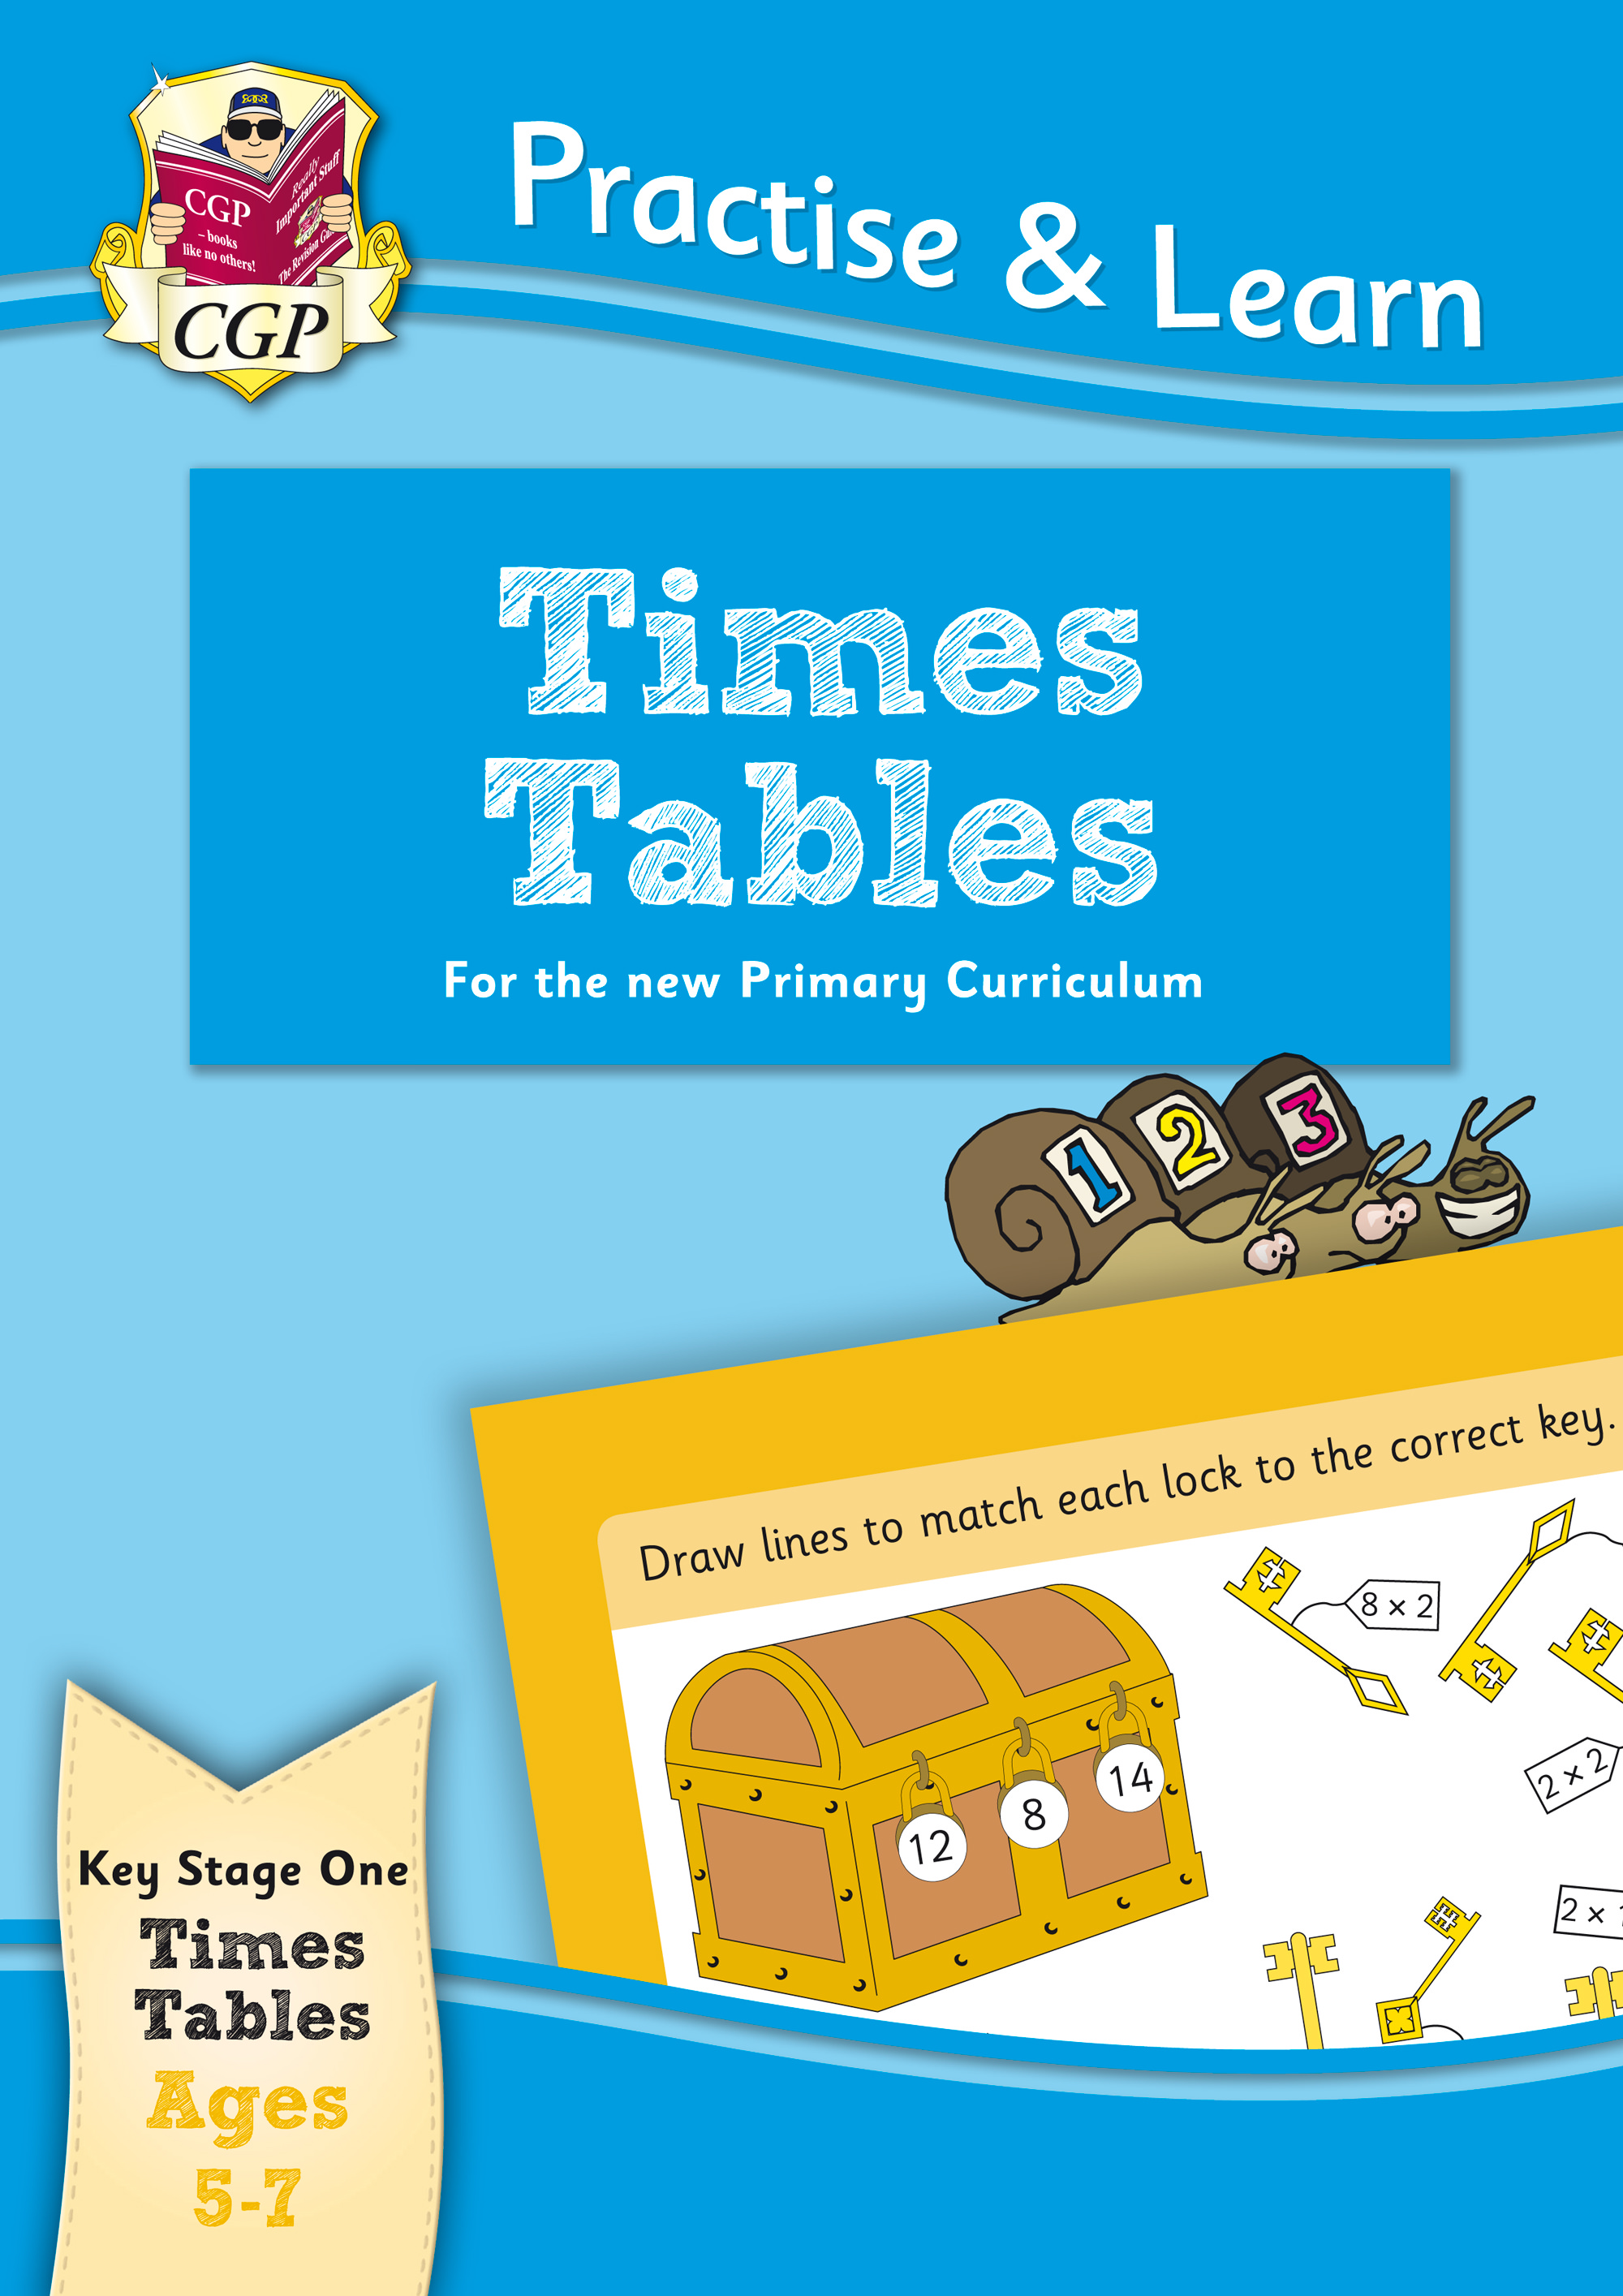 MPTT12 - New Curriculum Practise & Learn: Times Tables for Ages 5-7